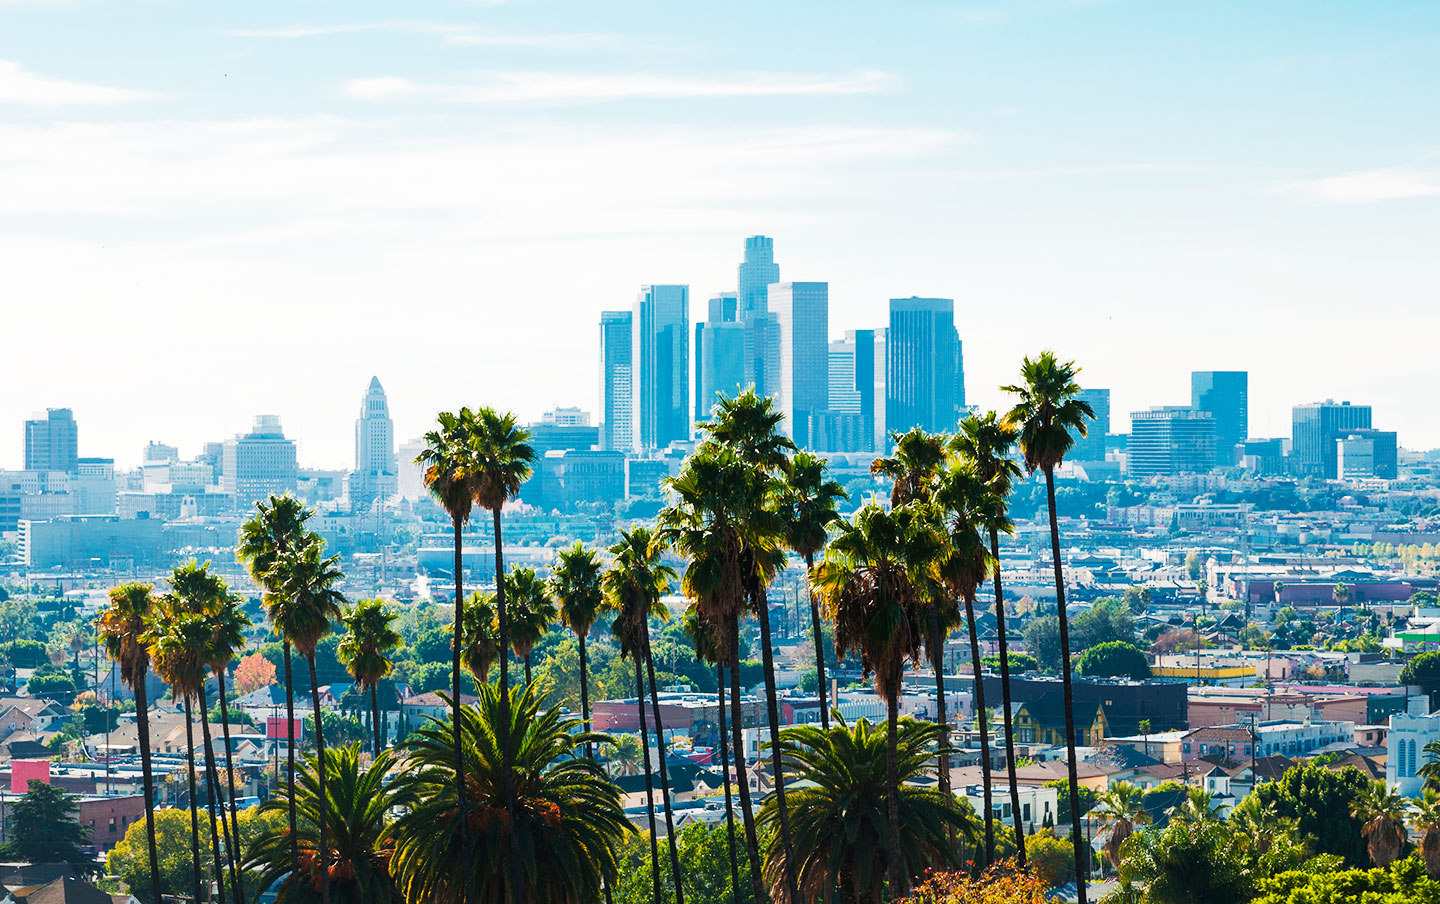 Key Housing has corporate housing available near LAX.